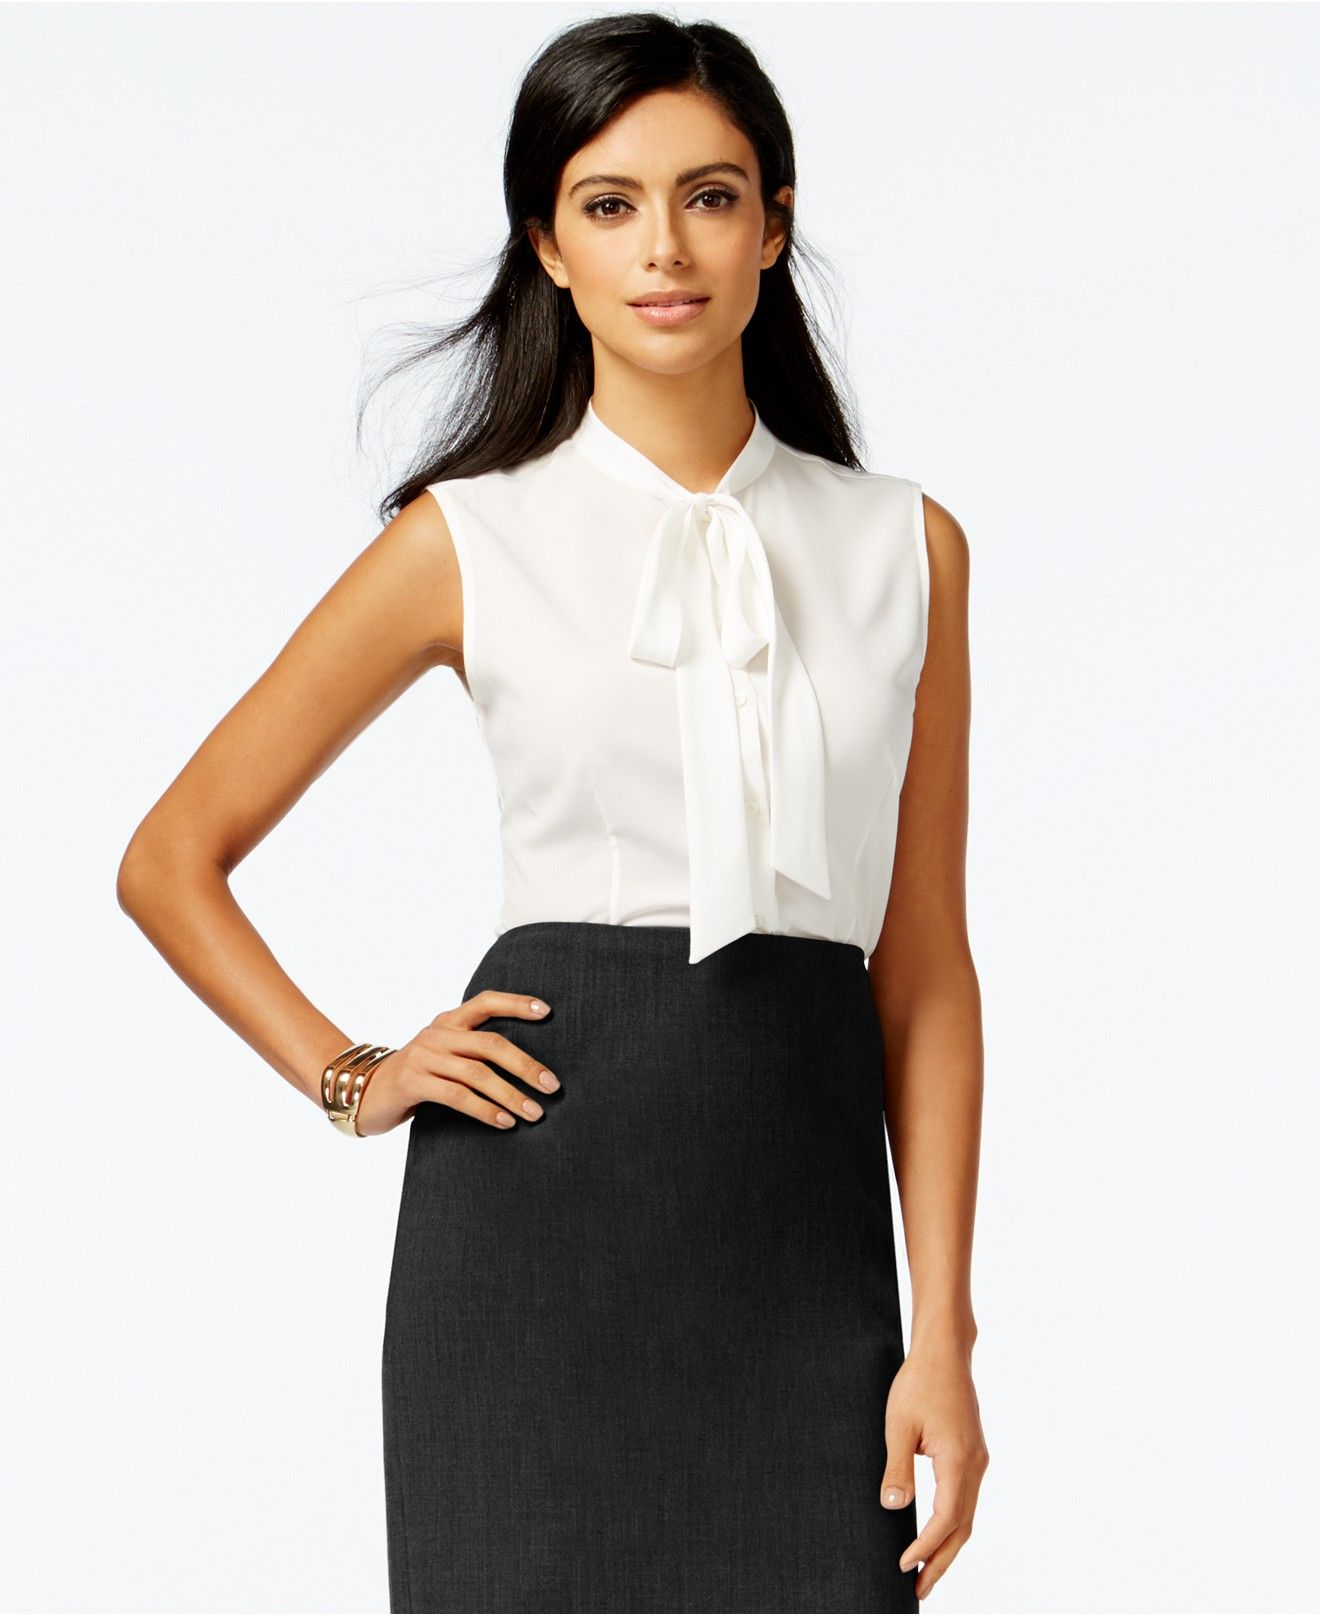 e8606cacac766 Anne Klein Sleeveless Tie-Neck Blouse - Tops - Women - Macy's ...